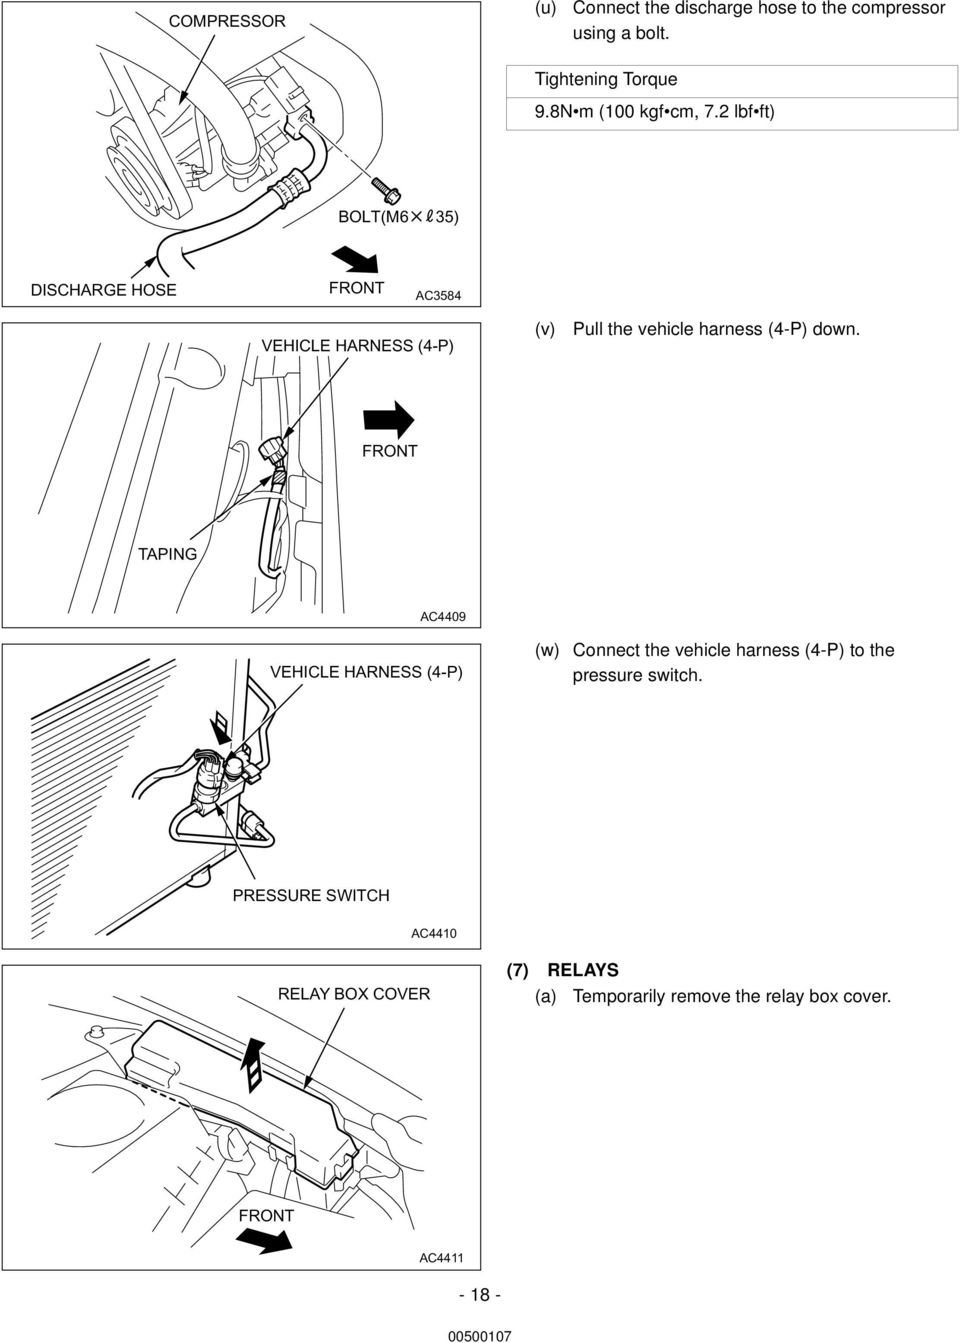 Inside Engine Compartment Toyota Air Conditioning English Europe Wiring Diagram 2004 Vw Passat Turbo Intercooler 1997 2 Lbf Ft Boltm6 35 Discharge Hose Ac3584 Vehicle Harness 4